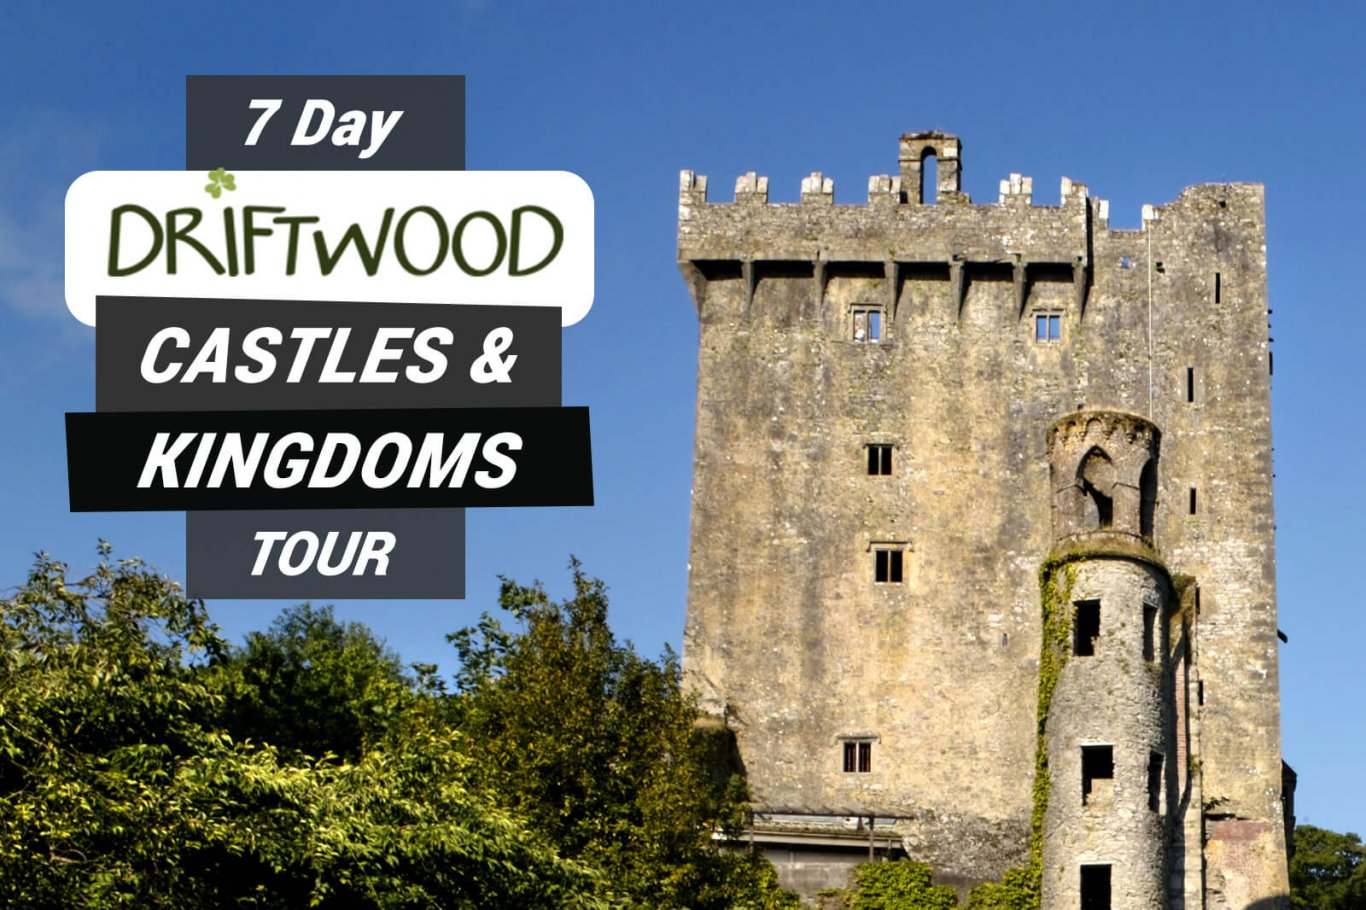 Blarney Castle in Ireland with graphic text for 7 Day Driftwood Castles & Kingdoms Tour overlaid